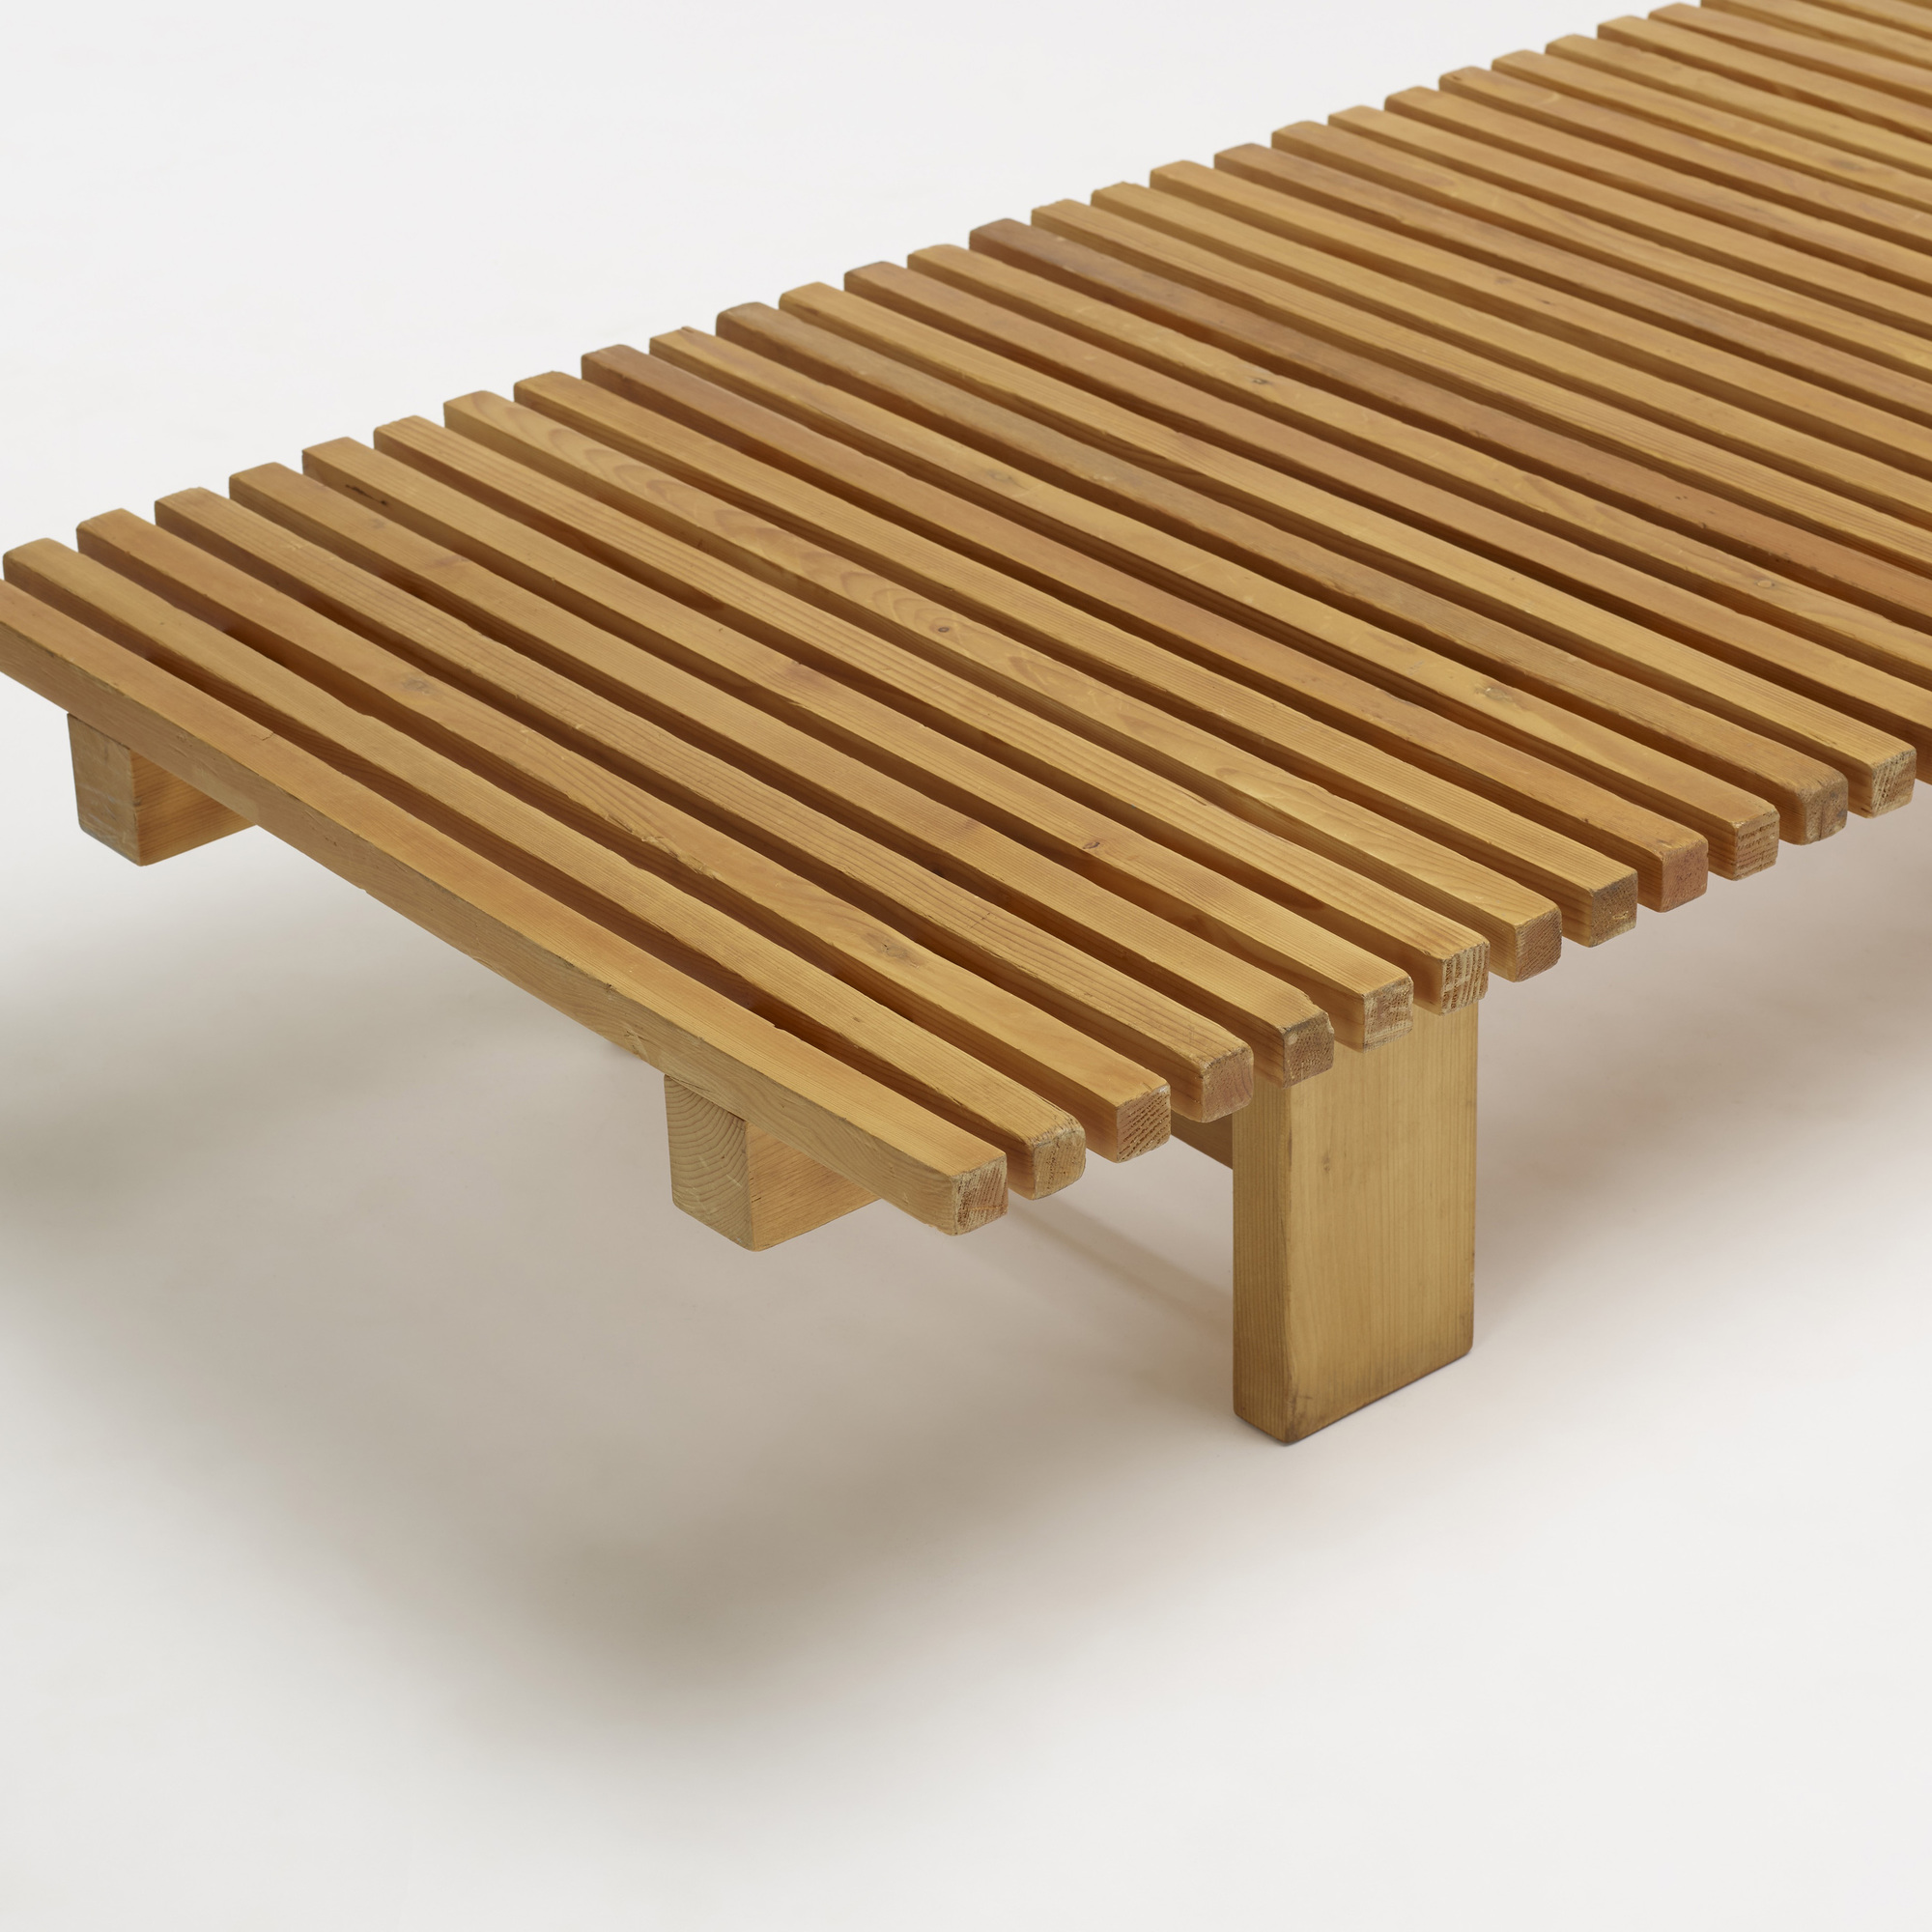 122: Charlotte Perriand / bench from Les Arcs, Savoie (3 of 4)